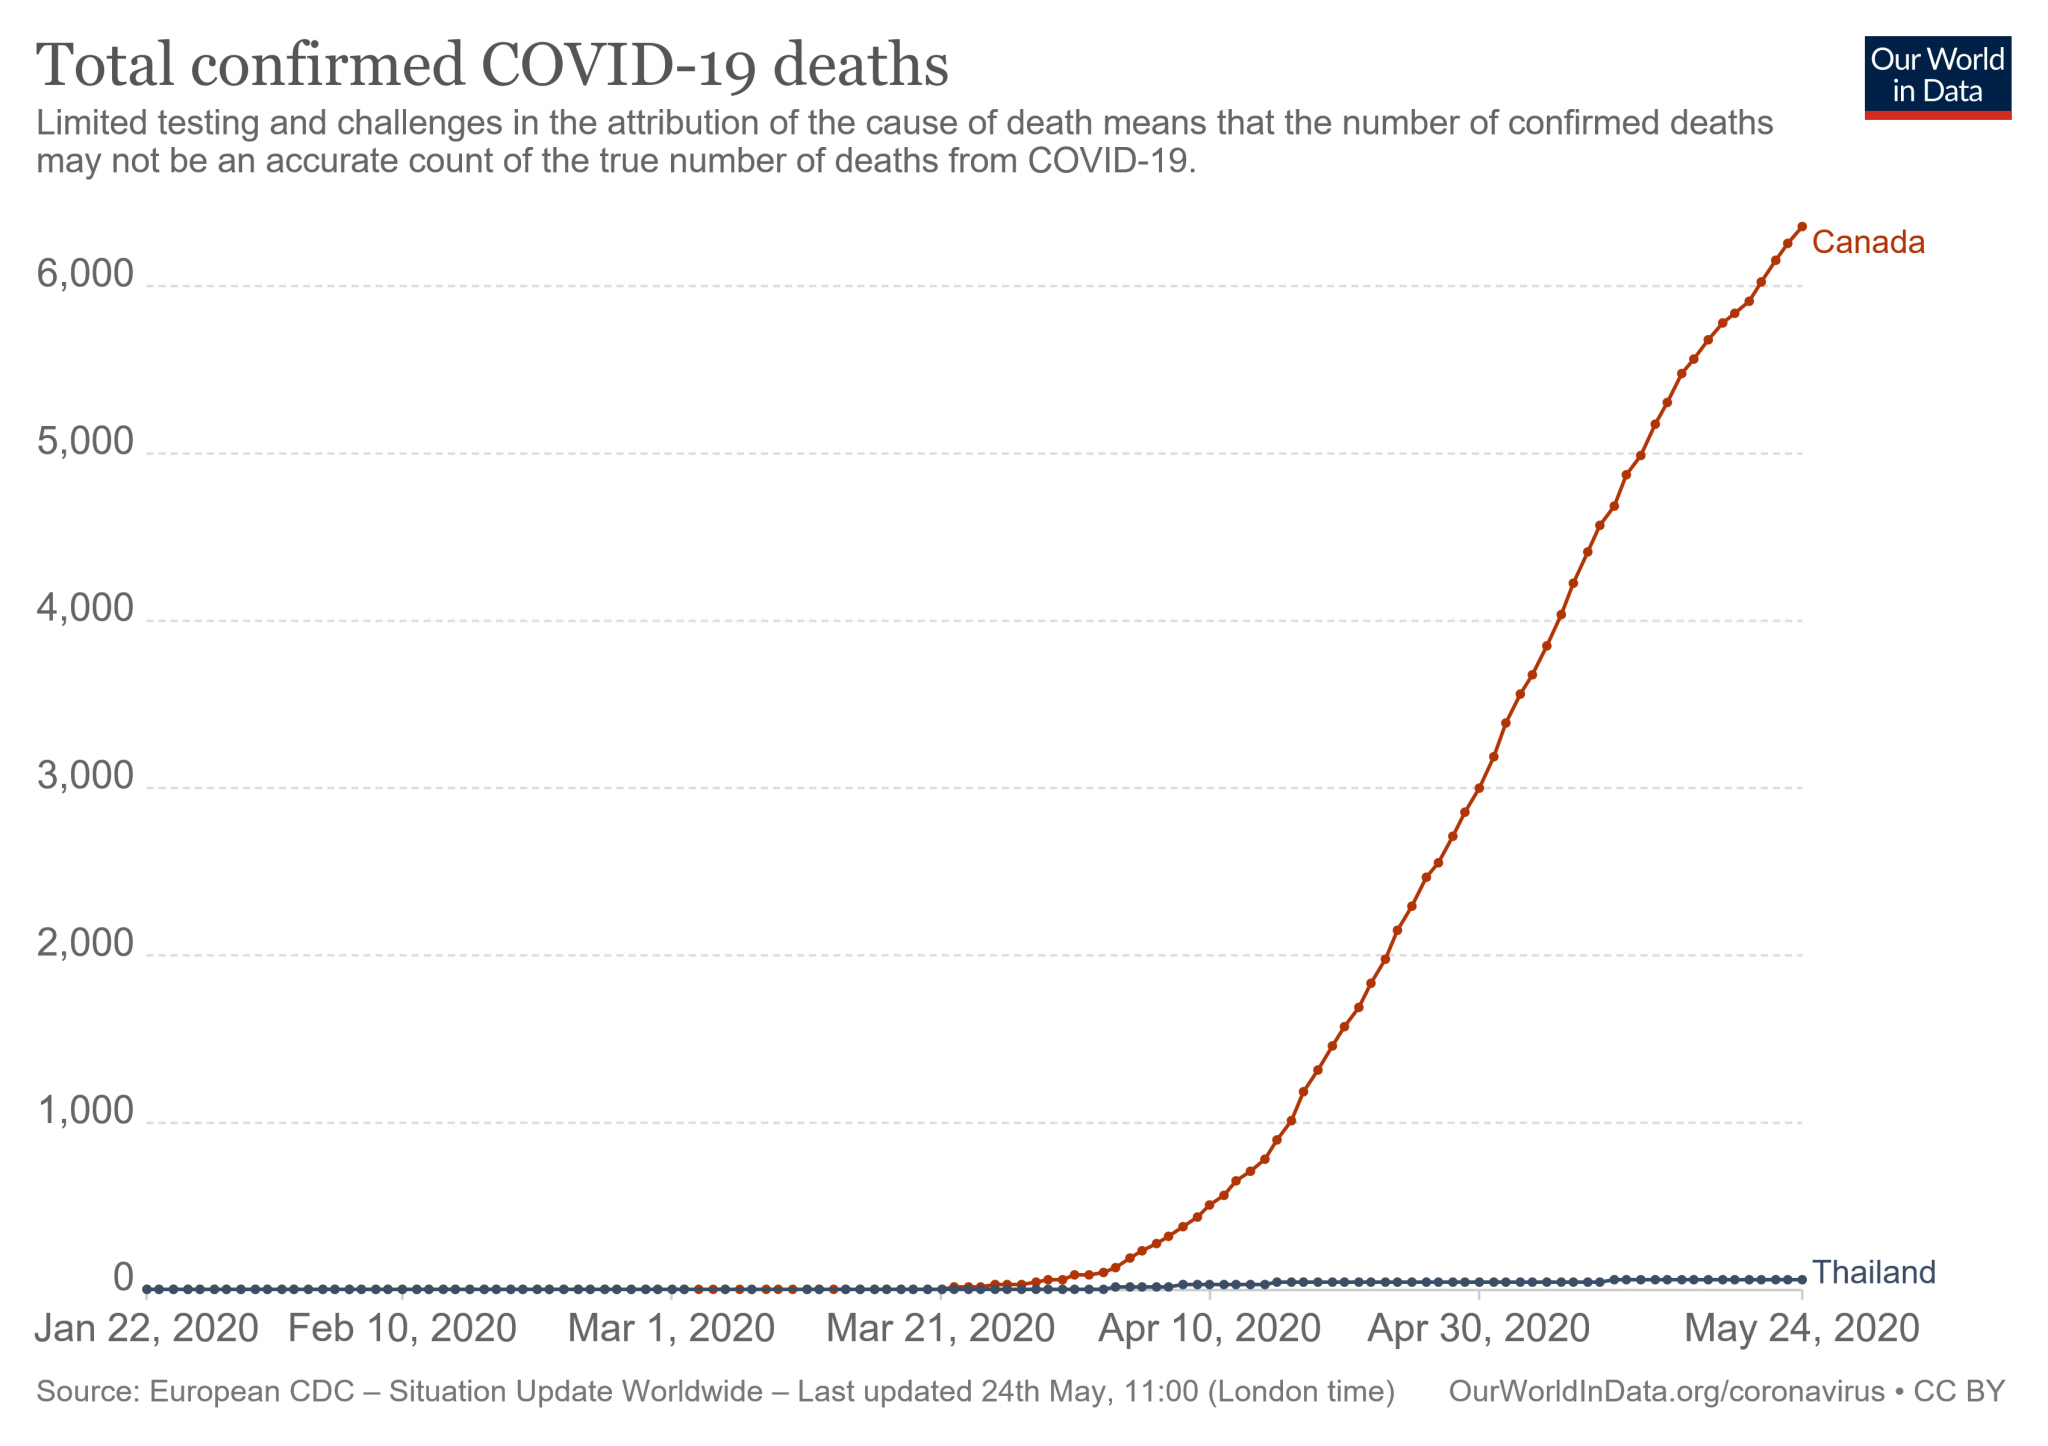 20200525 total-deaths-covid-19 CAN TH.png